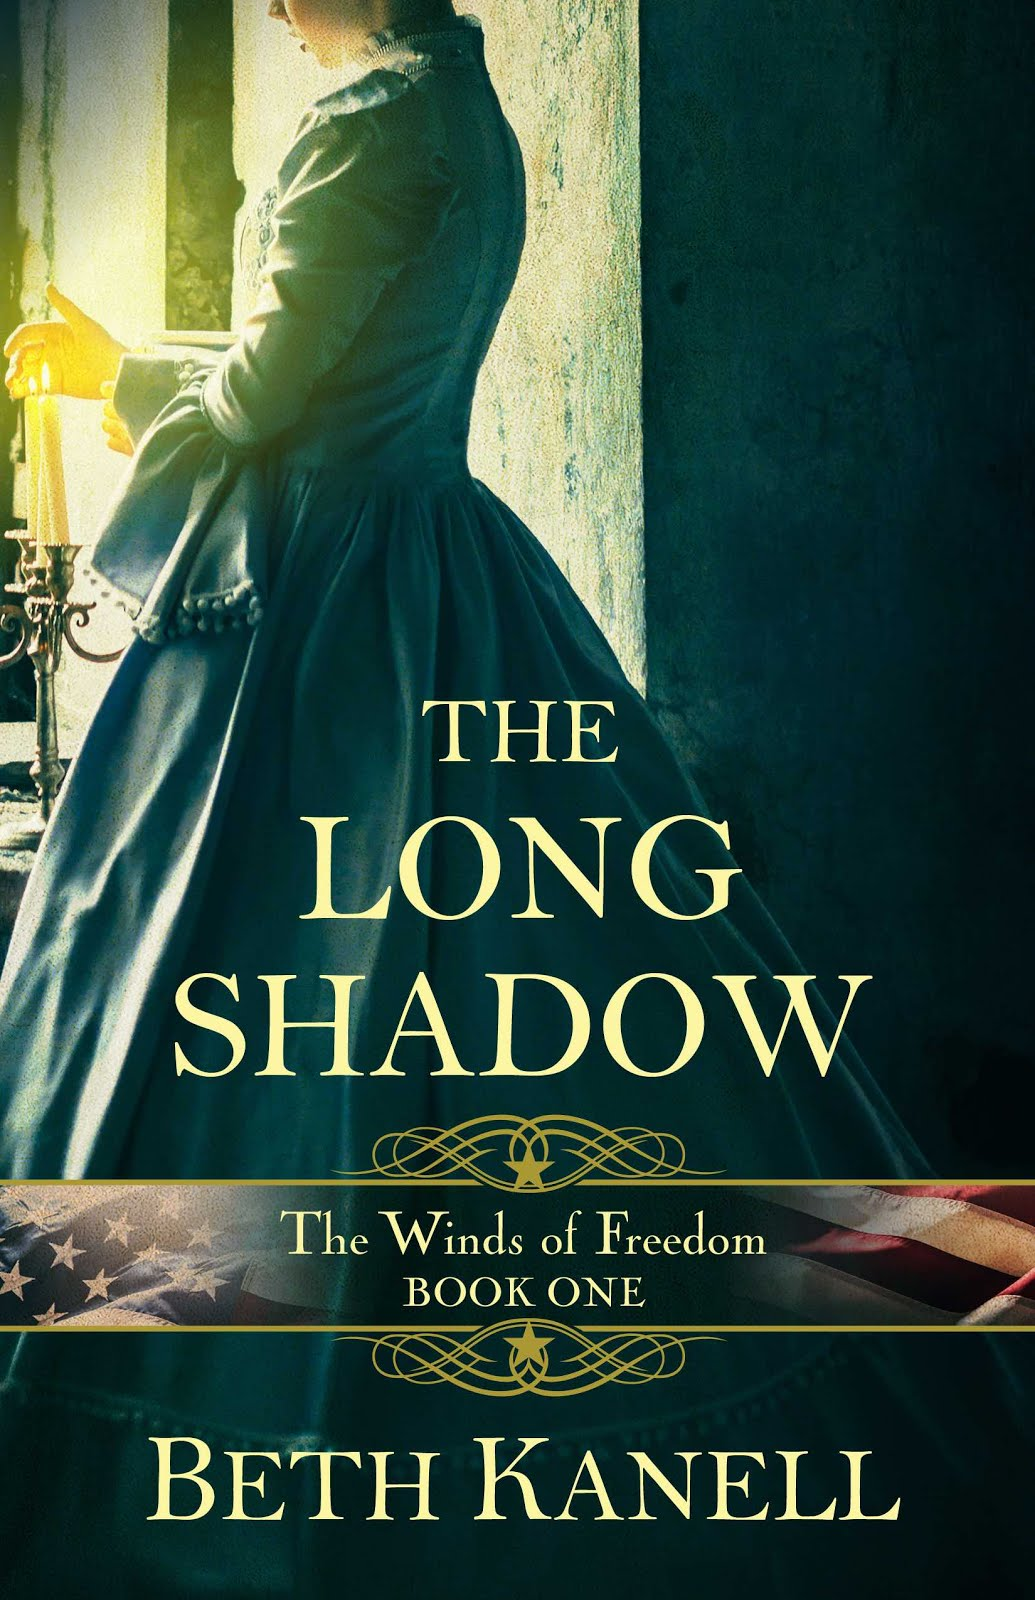 THE LONG SHADOW, three teens in 1850 Vermont -- what dangers do they race into?